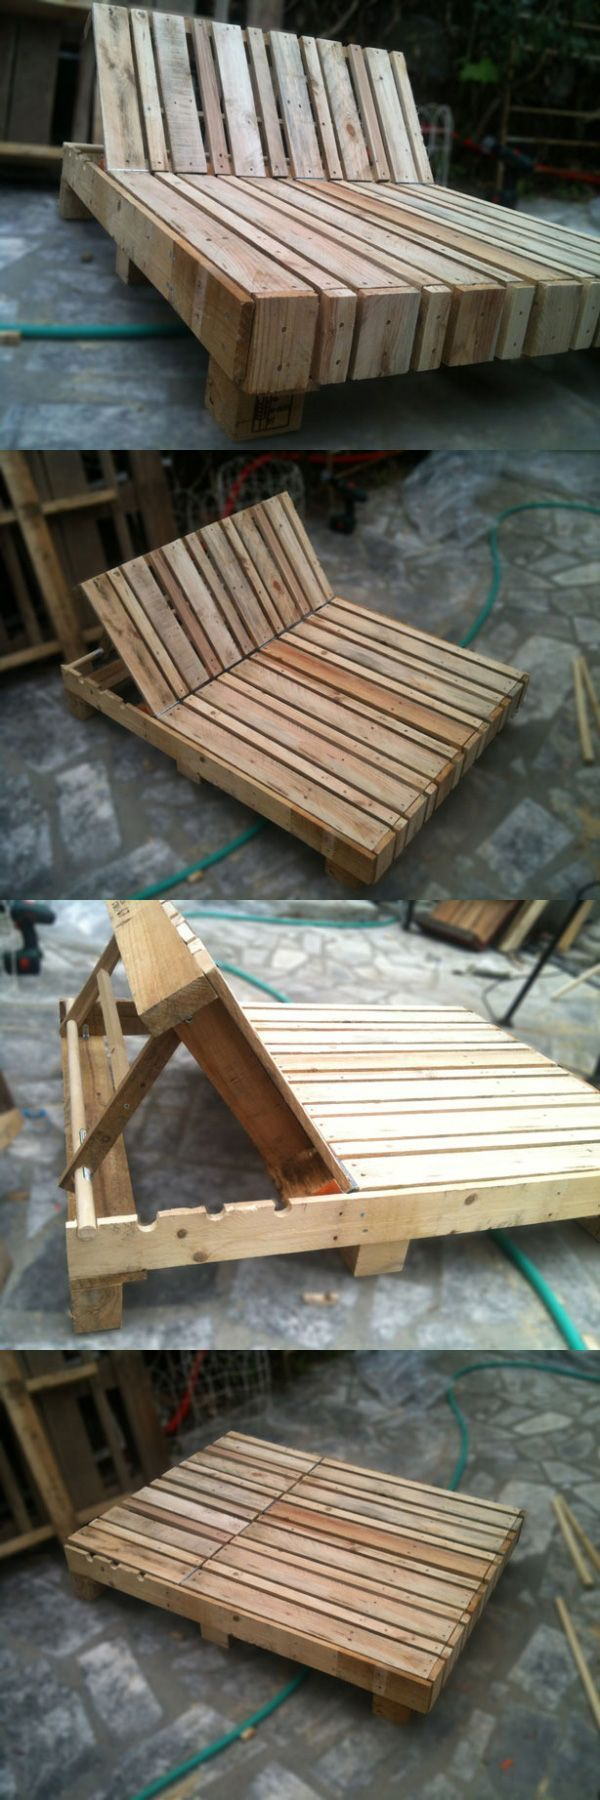 #palletDIY: 3 outdoor seating ideas anyone can build. Pallet Lounger: Plop some…